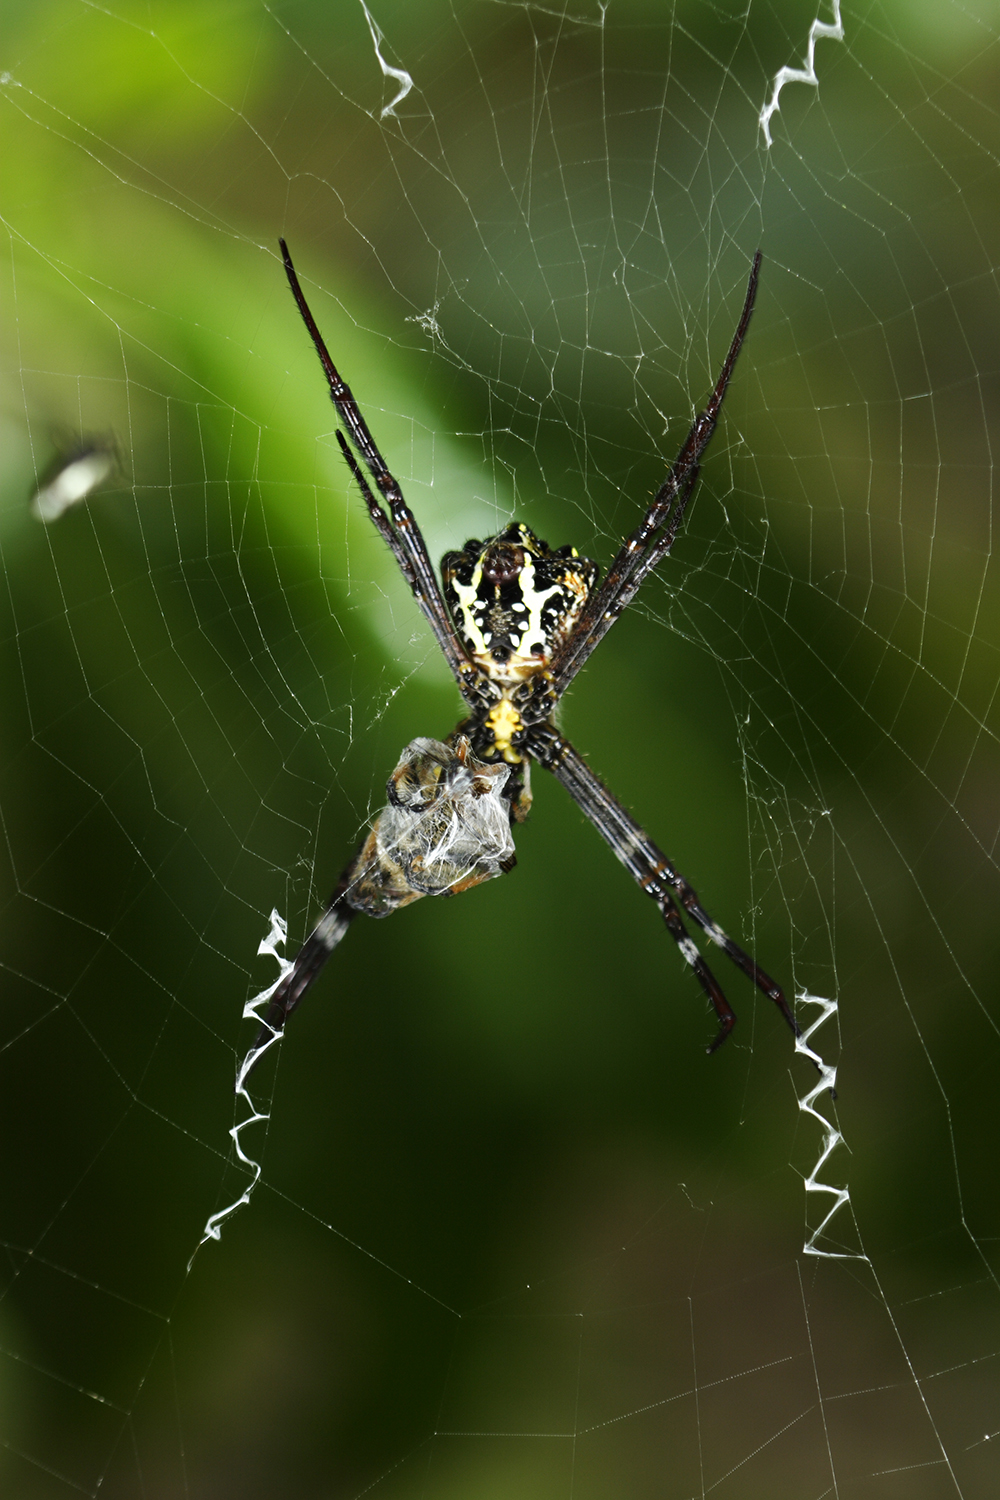 17-cross-spider-with-stablimentum-on-its-orb-web